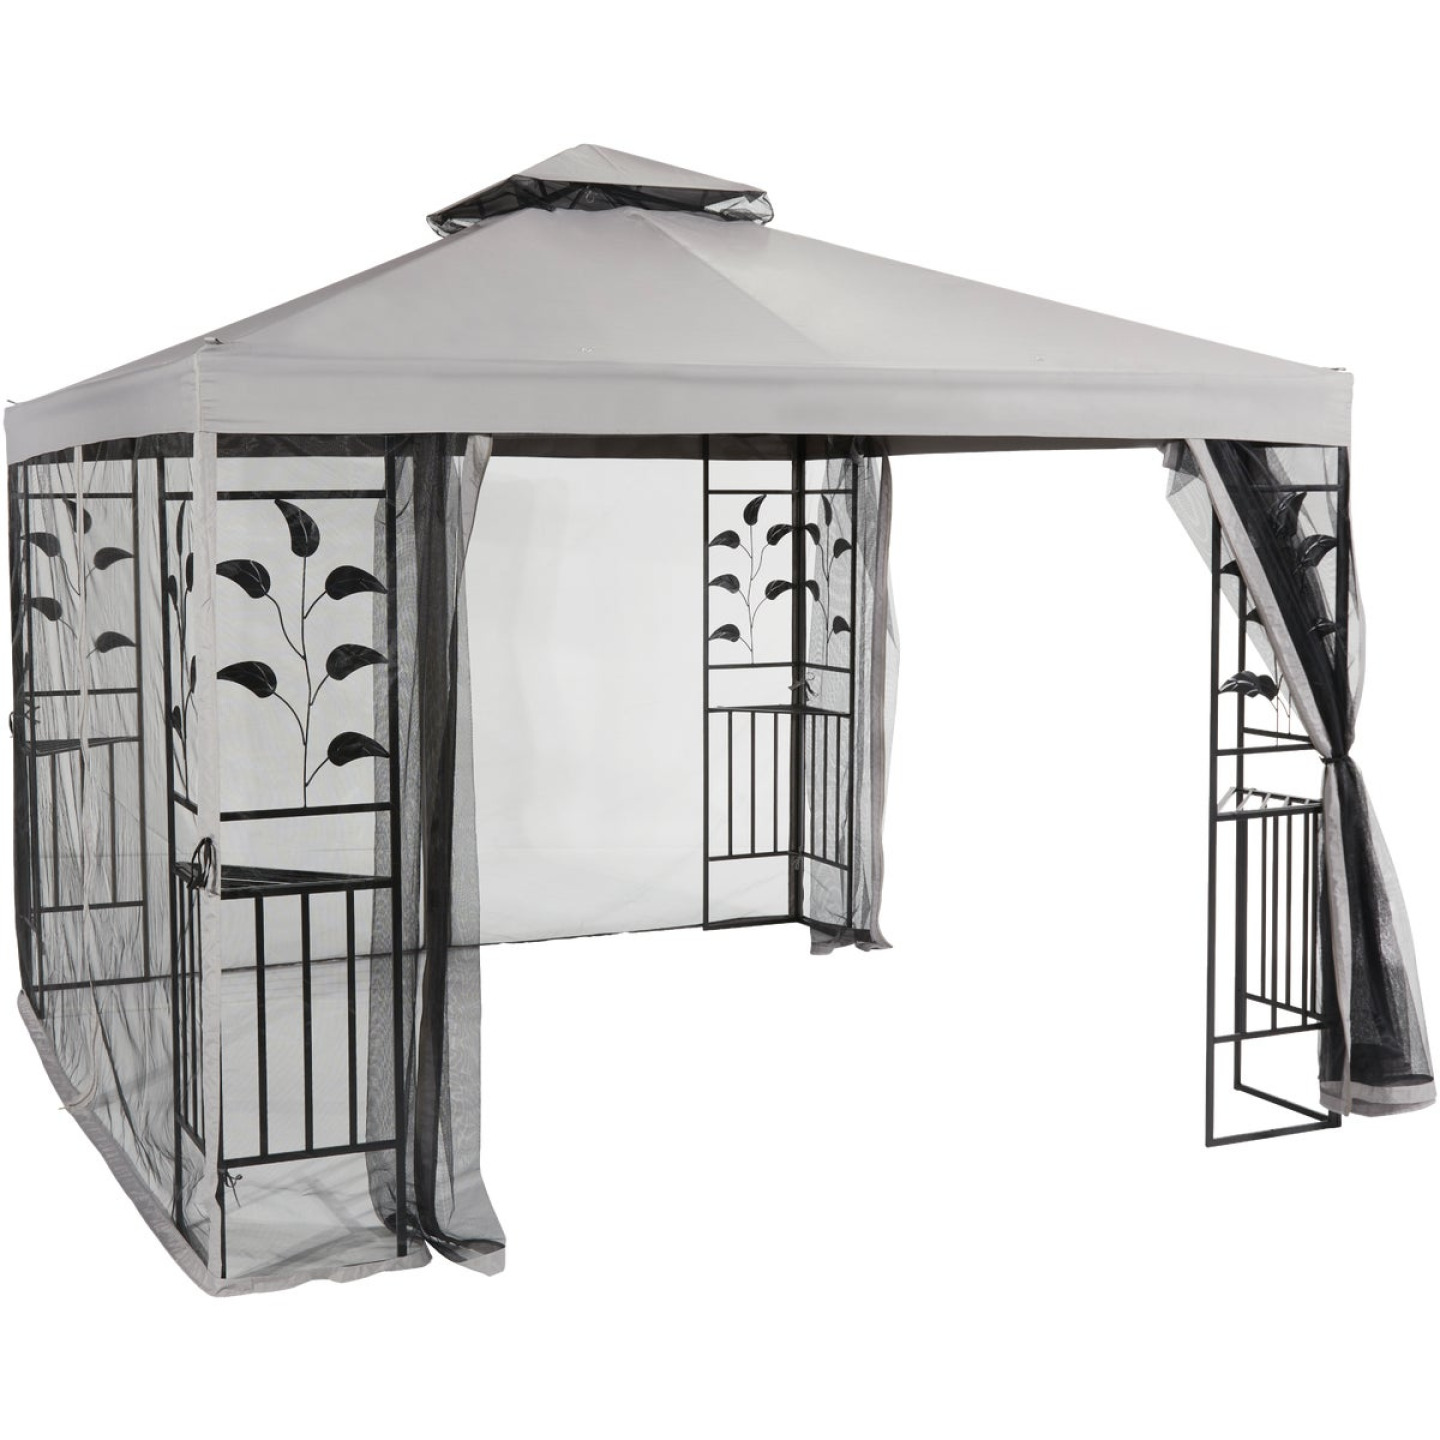 Outdoor Expressions 10 Ft. x 10 Ft. Gray & Black Steel Gazebo with Sides Image 10